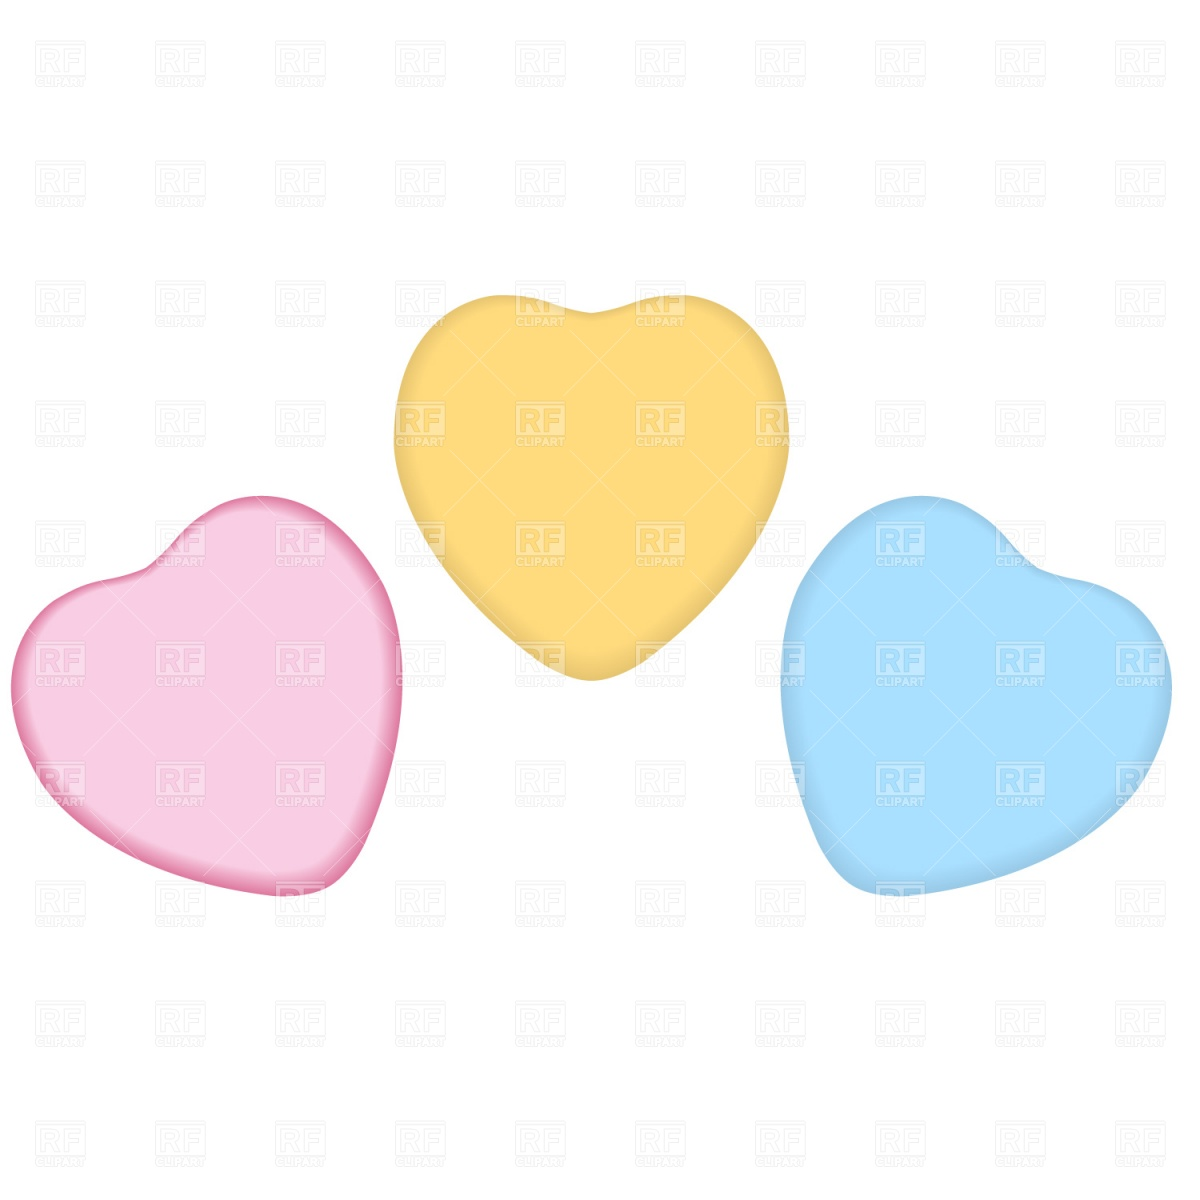 Conversation hearts clipart free vector transparent library Conversation Heart Clipart - Clipart Kid vector transparent library